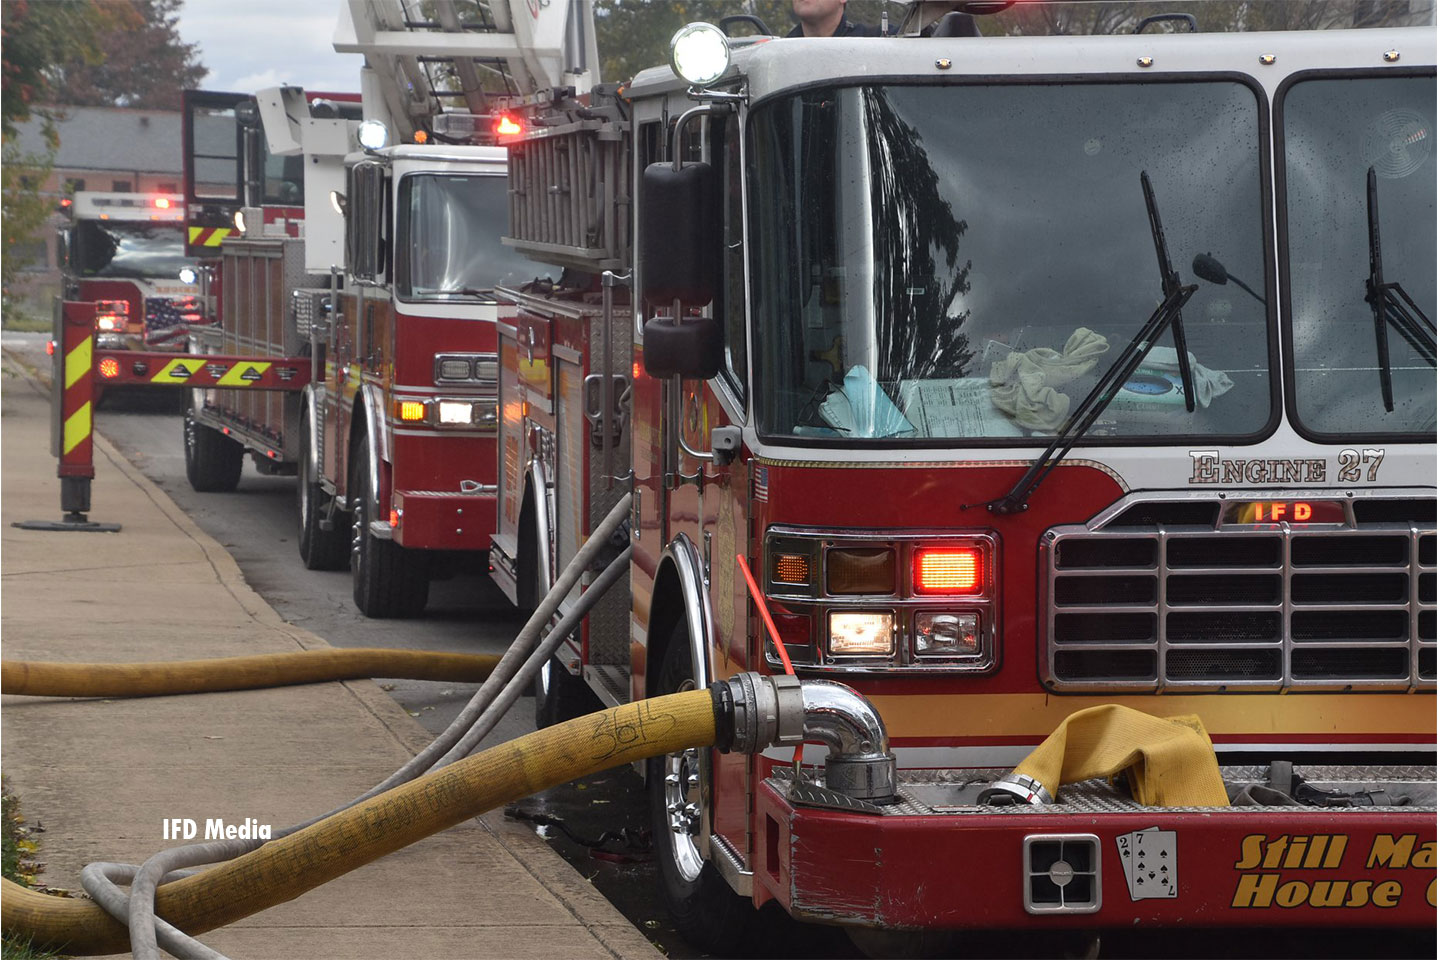 Rigs lined up at the fire scene.